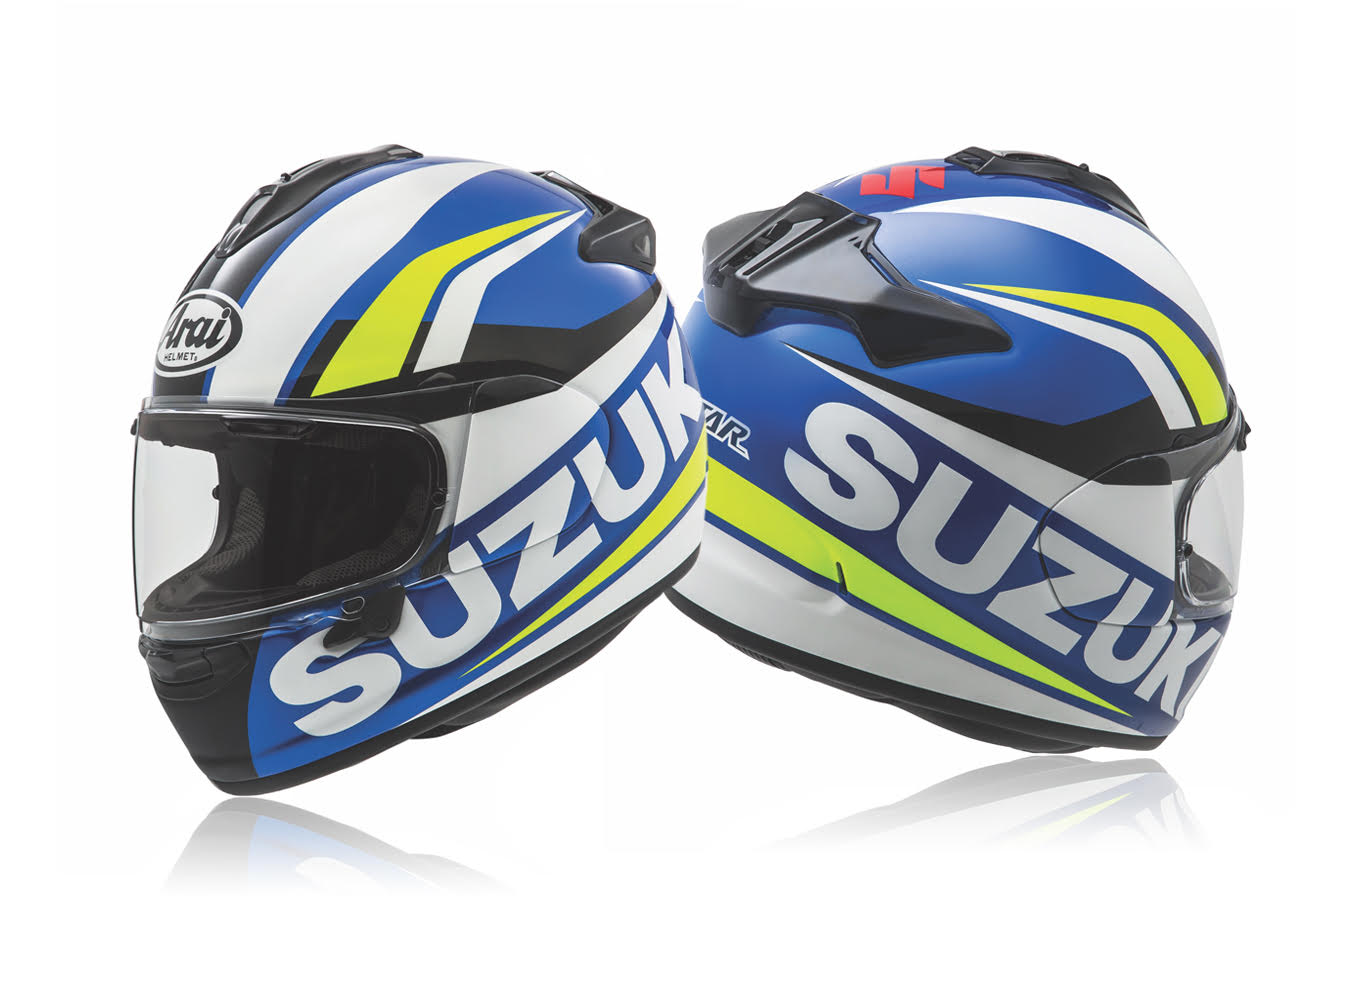 Arai Has Some New Graphics And Models Motorcycle Com News